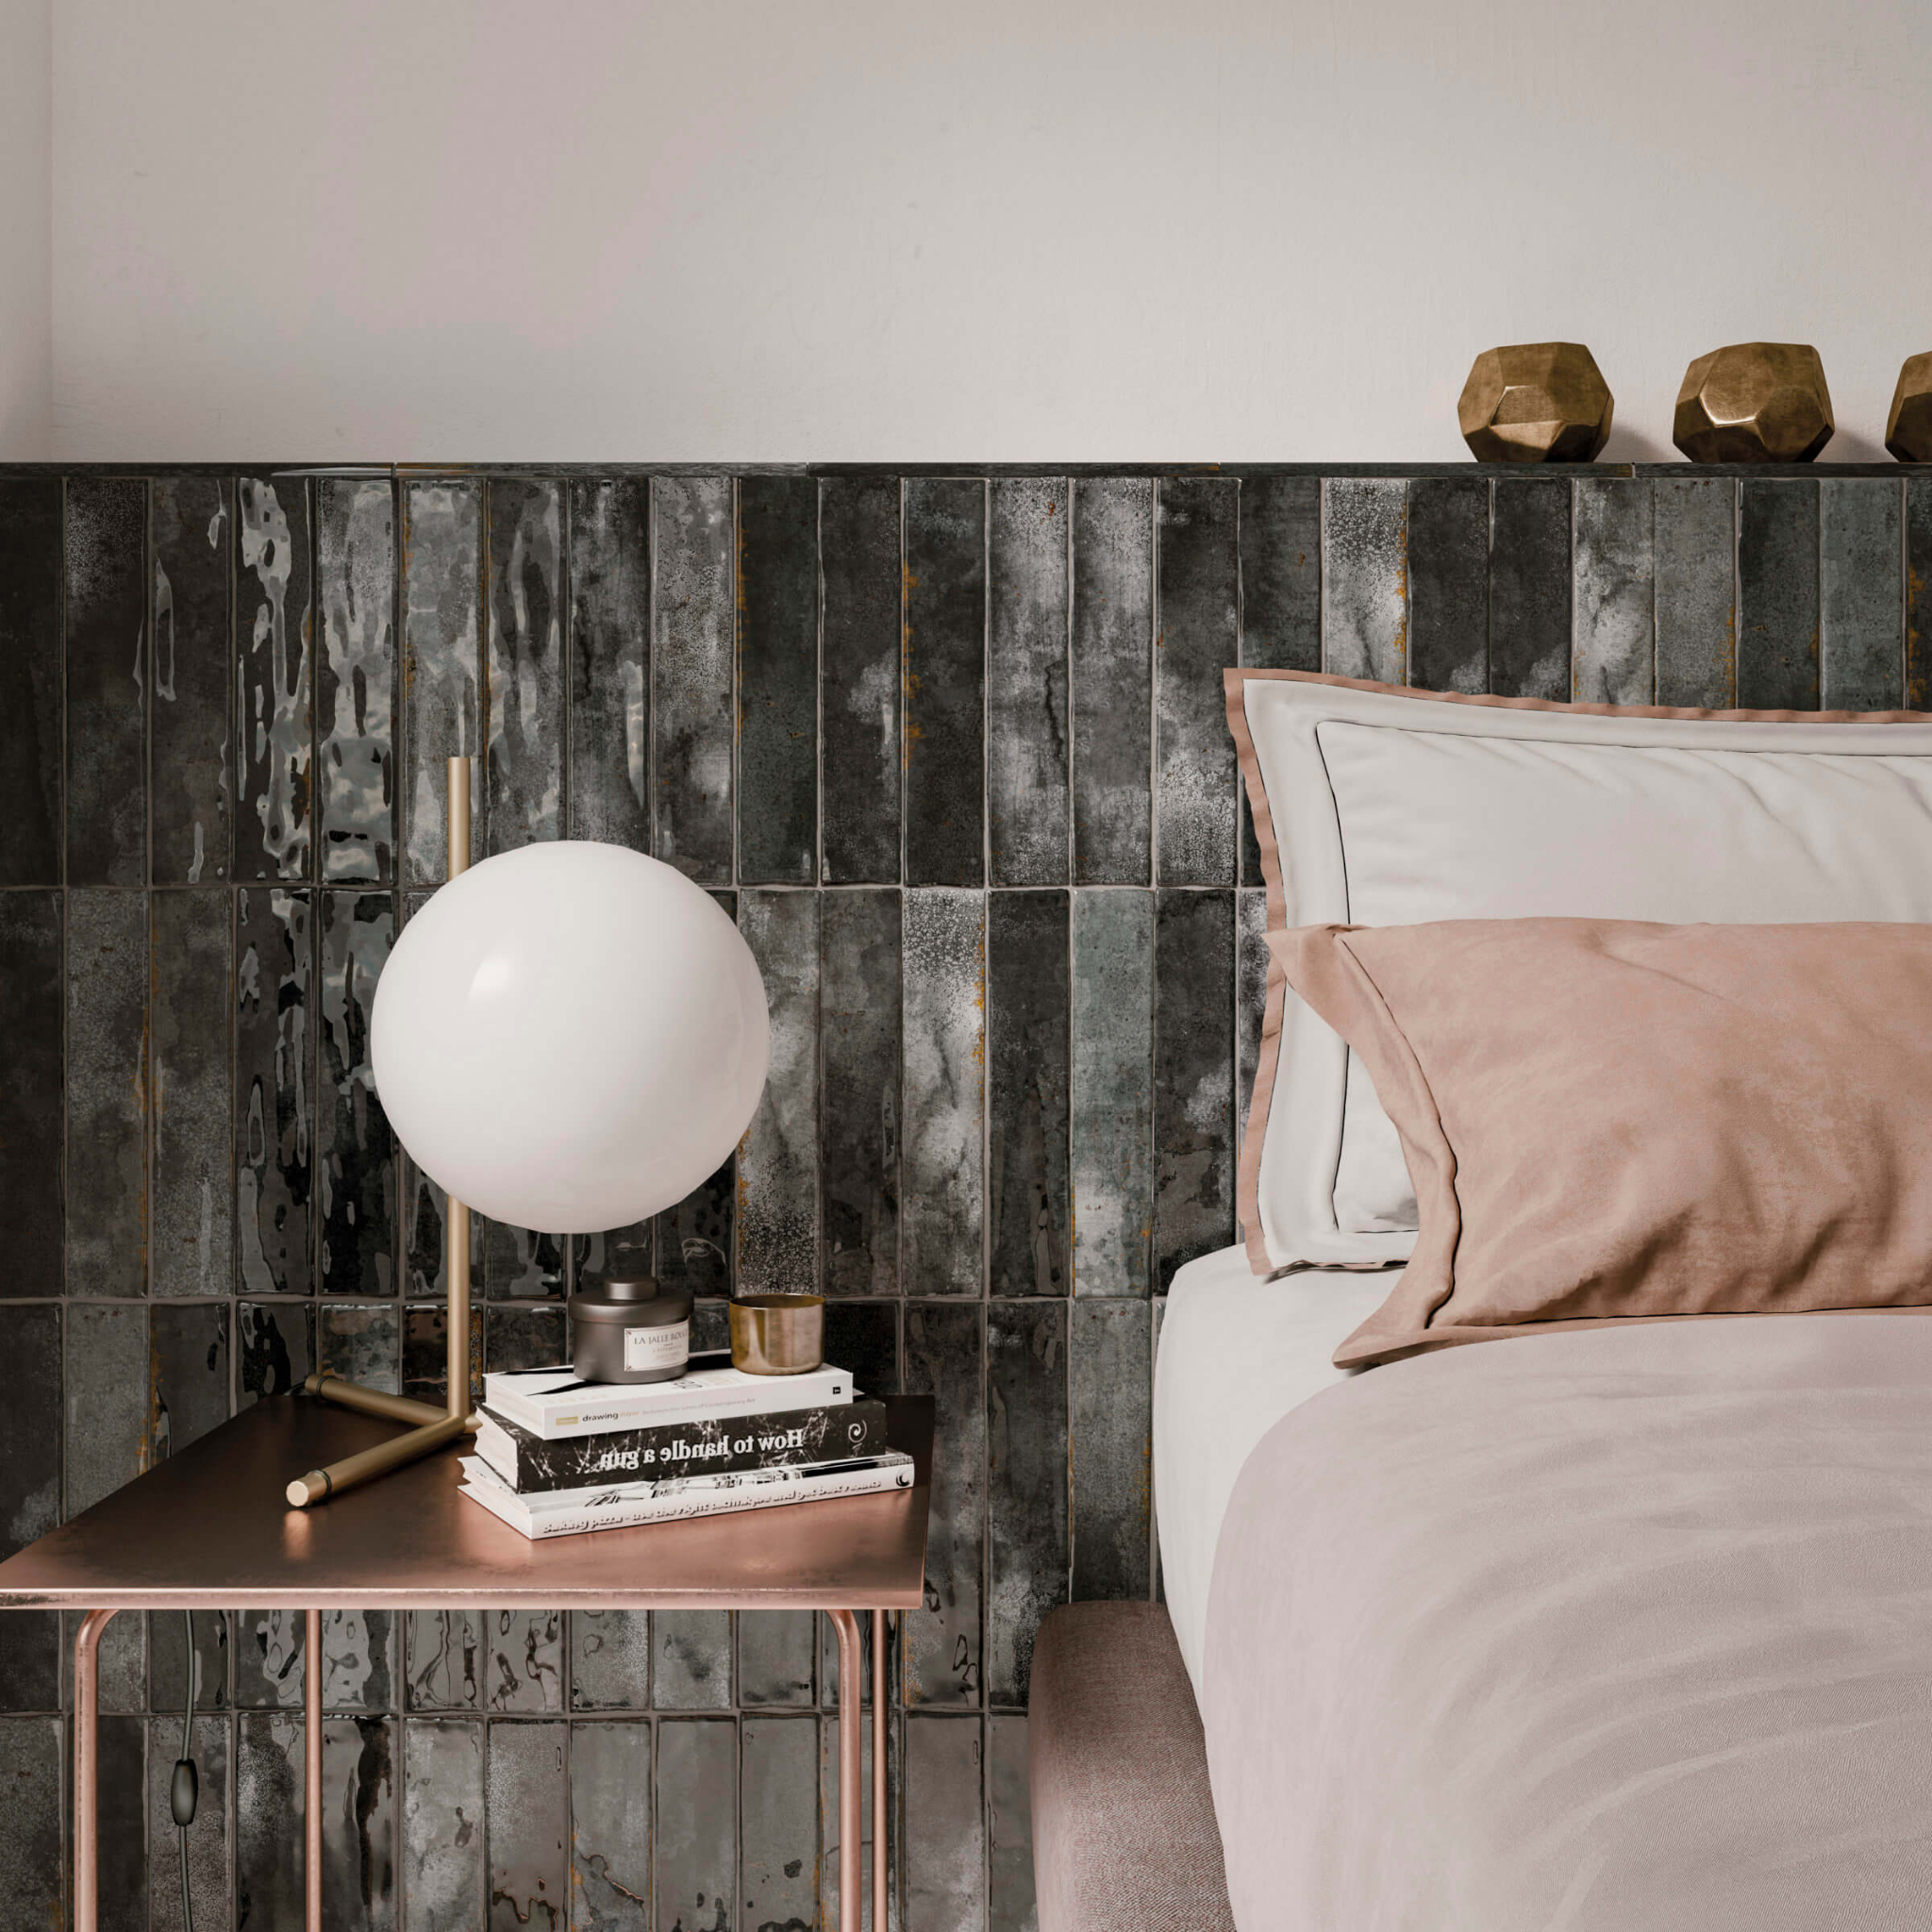 Bedroom with black tile wall